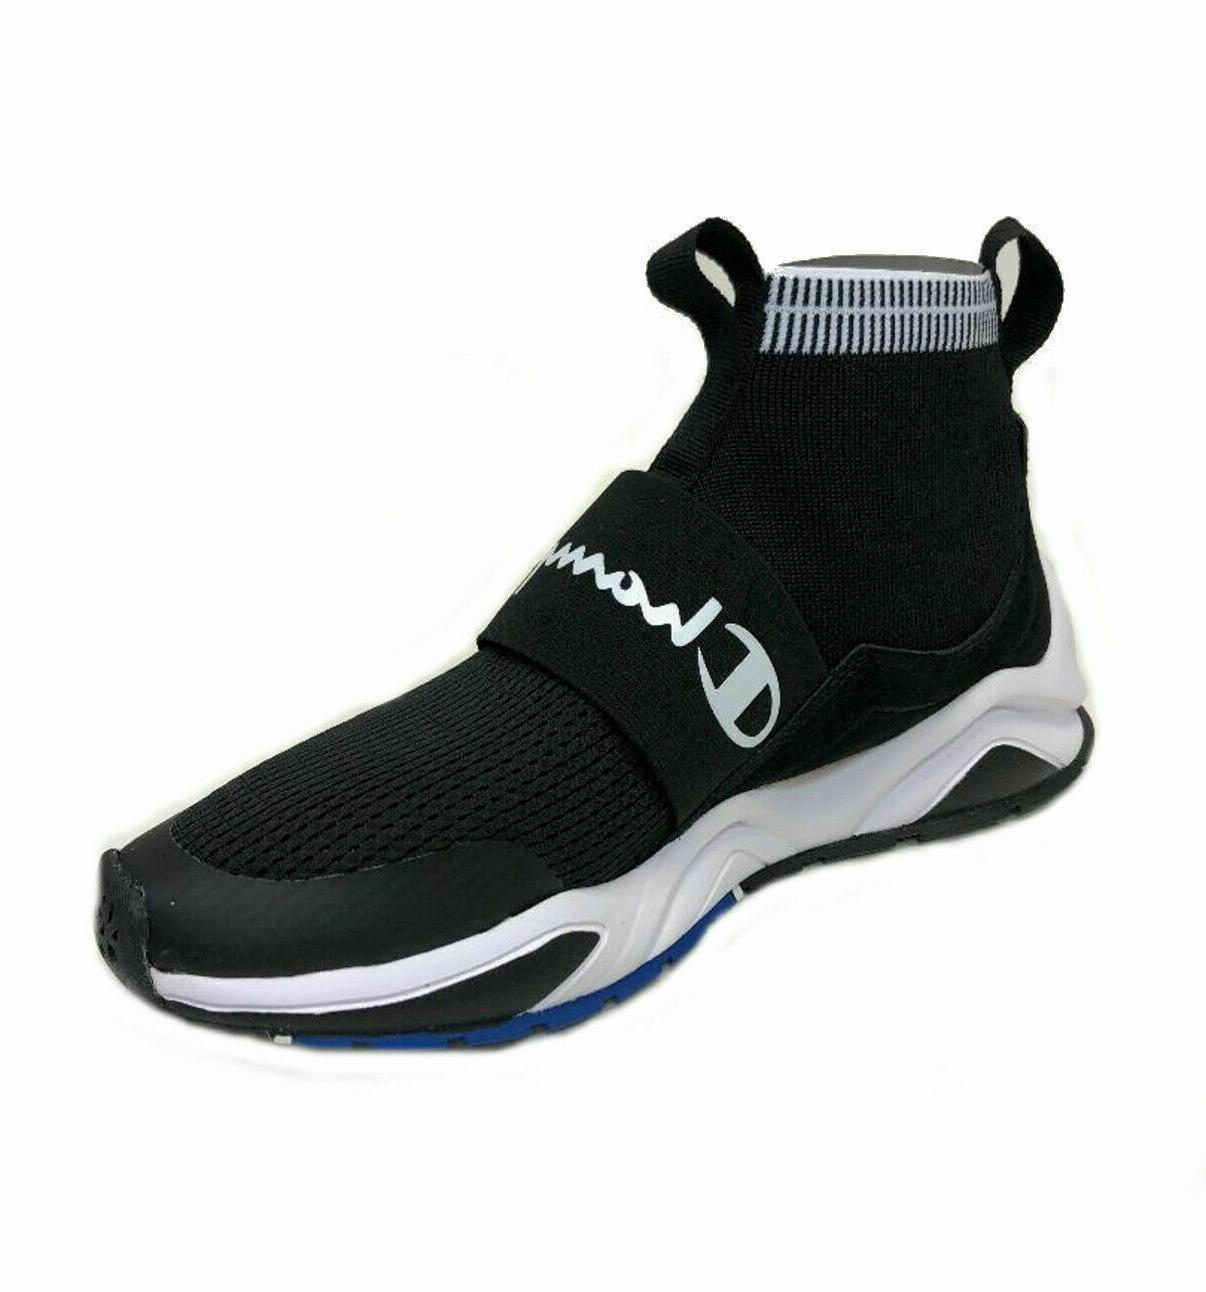 2019 Mens Champion Rally Pro Sneakers Shoes Running